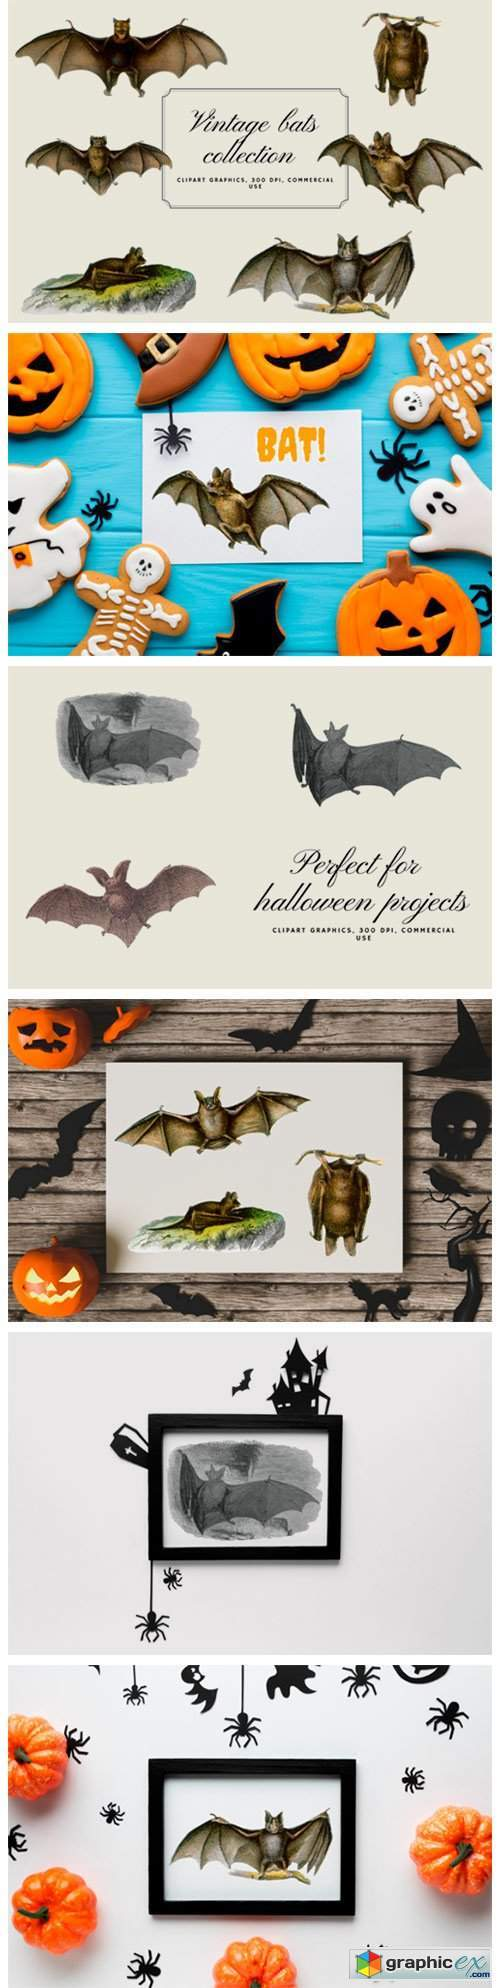 Vintage Bats Collection, Creepy Graphics